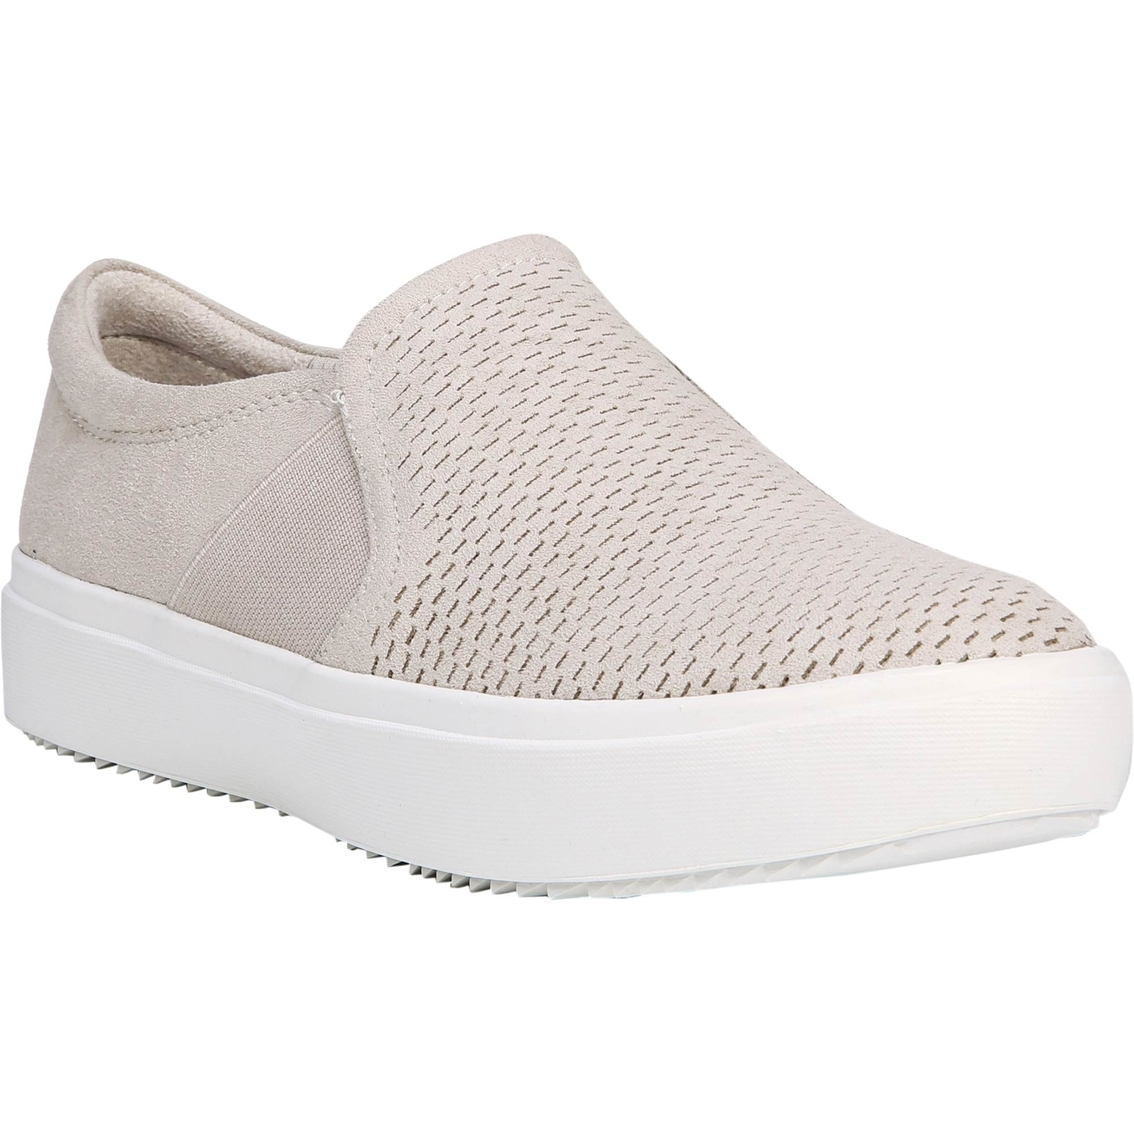 b49bef8a7219 Dr. Scholl s Women s Wander Up Slip On Sneakers